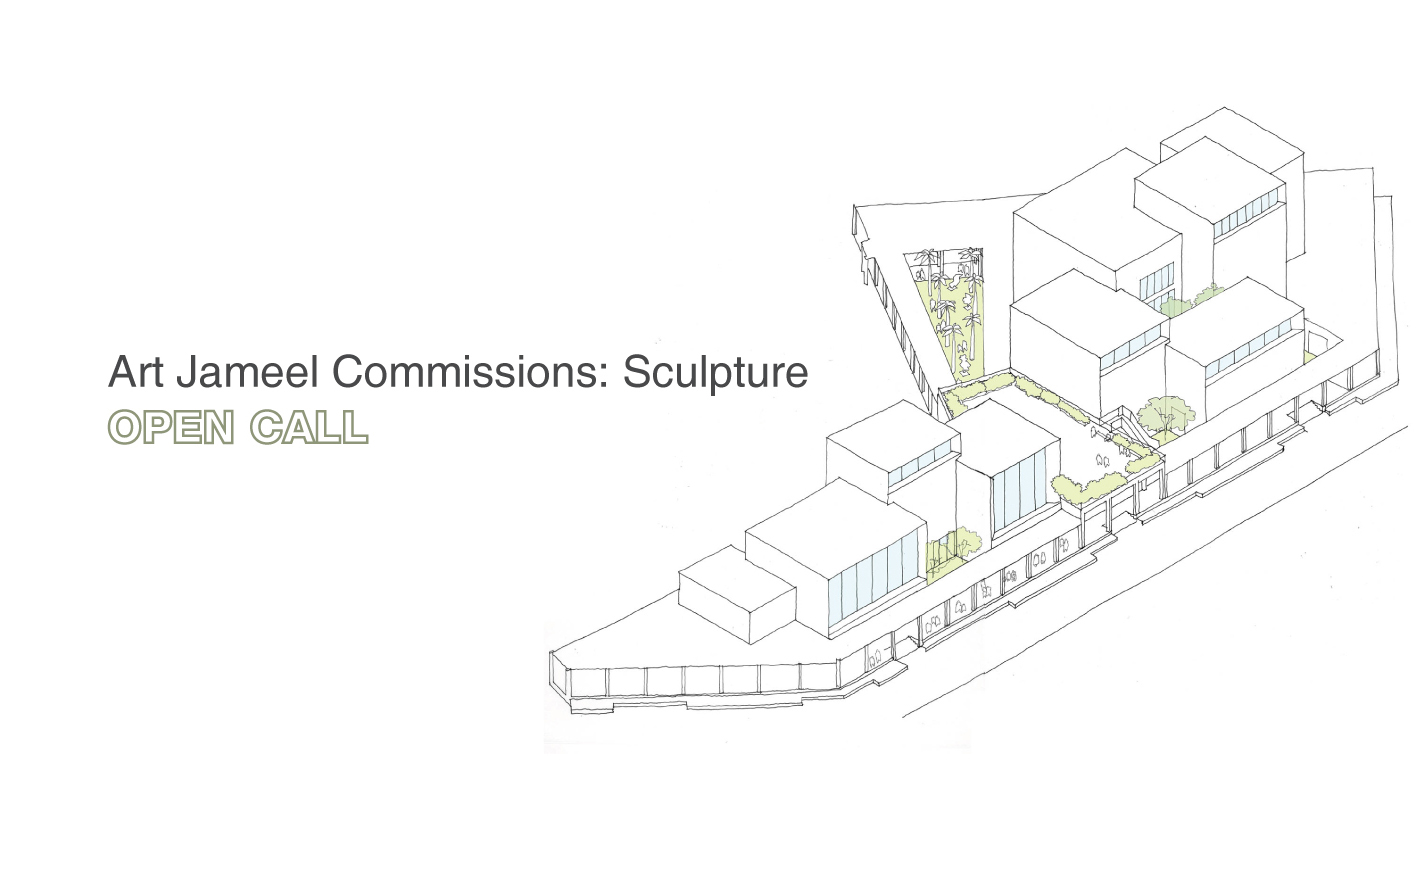 Art Jameel Commissions: Sculpture supplementary visuals and FAQs